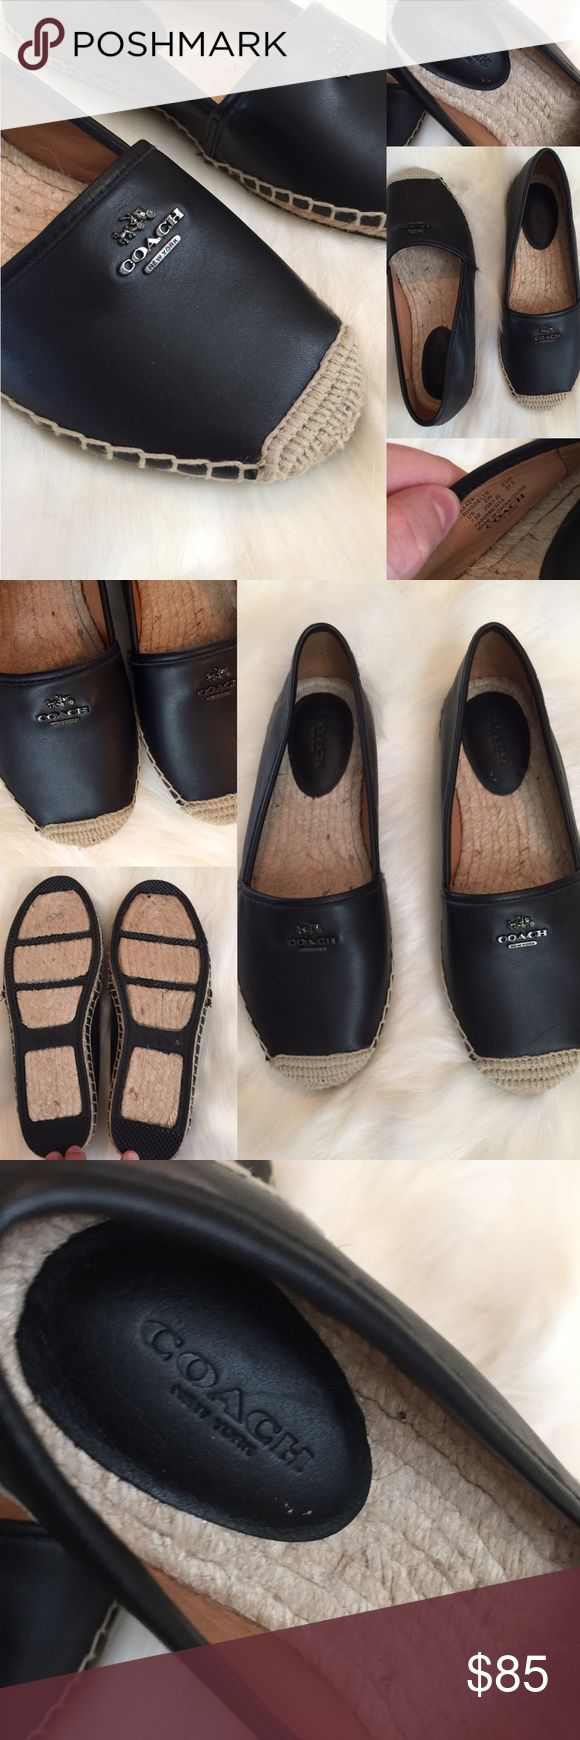 COACH Rhodelle Leather Espadrille Flat Loafer, 7.5 New without tags!   Gorgeous soft black leather espadrille flats, COACH brand!  Size 7.5  Coach Shoes Espadrilles